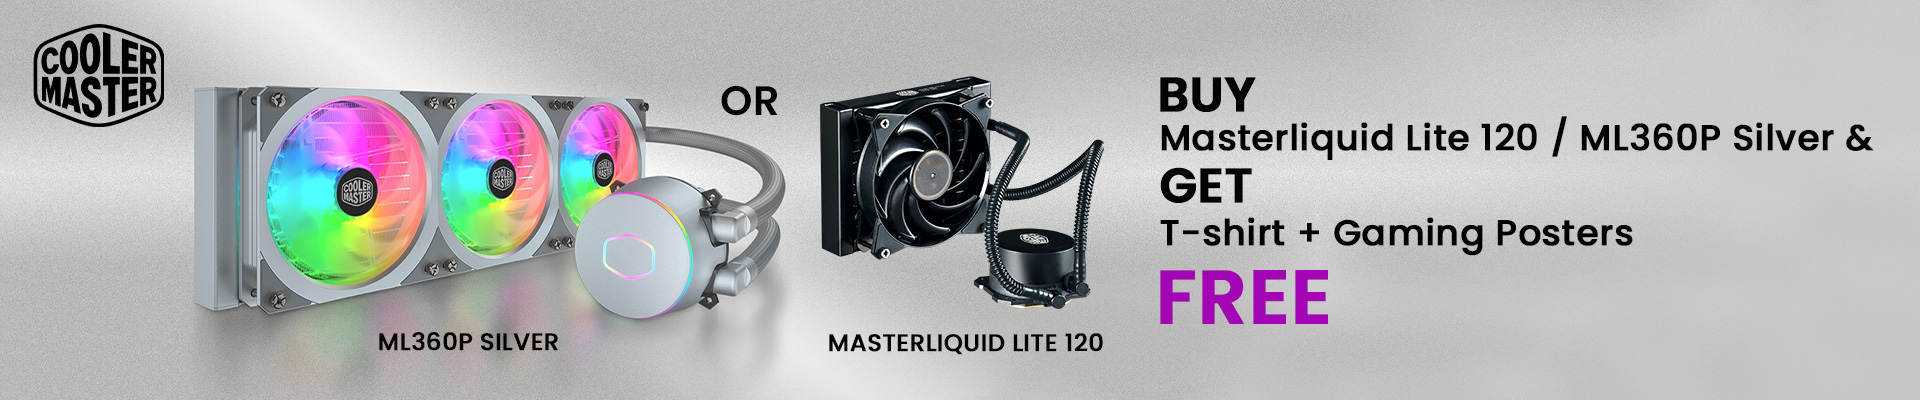 Cooler Master Masterliquid Lite 120 and ML360P Silver Offer